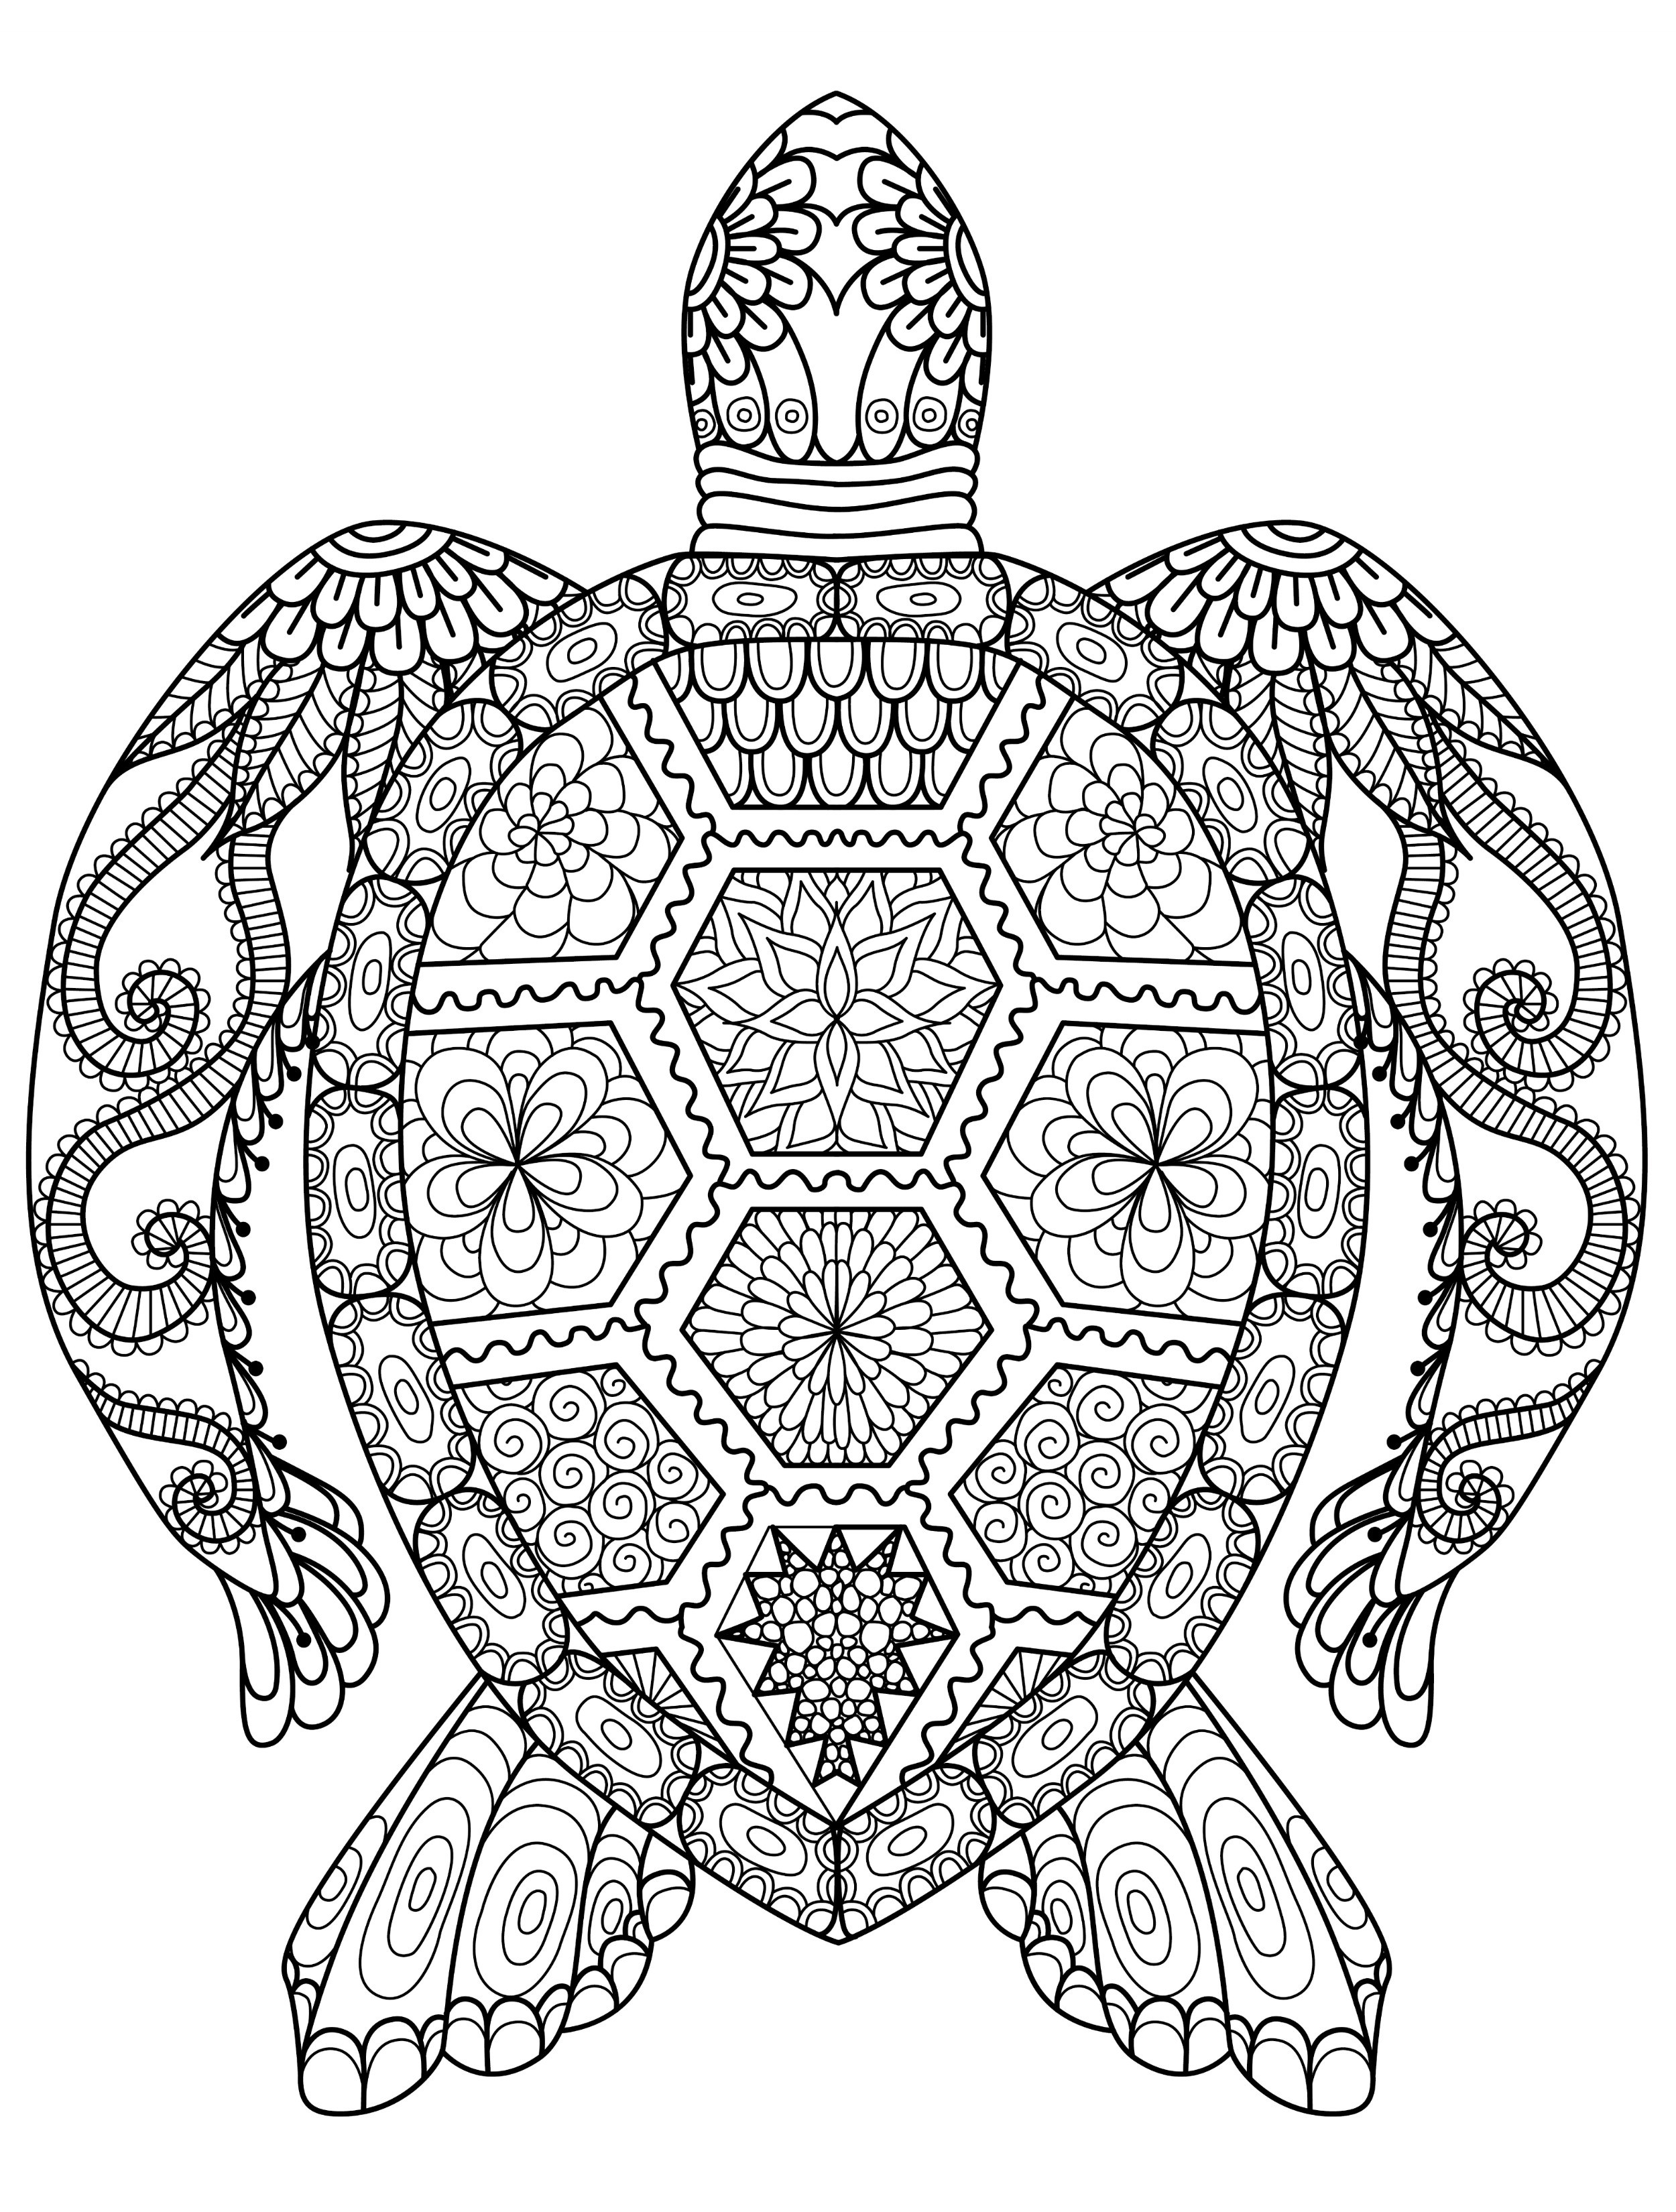 adult coloring pages animals adult coloring pages animals best coloring pages for kids adult coloring animals pages